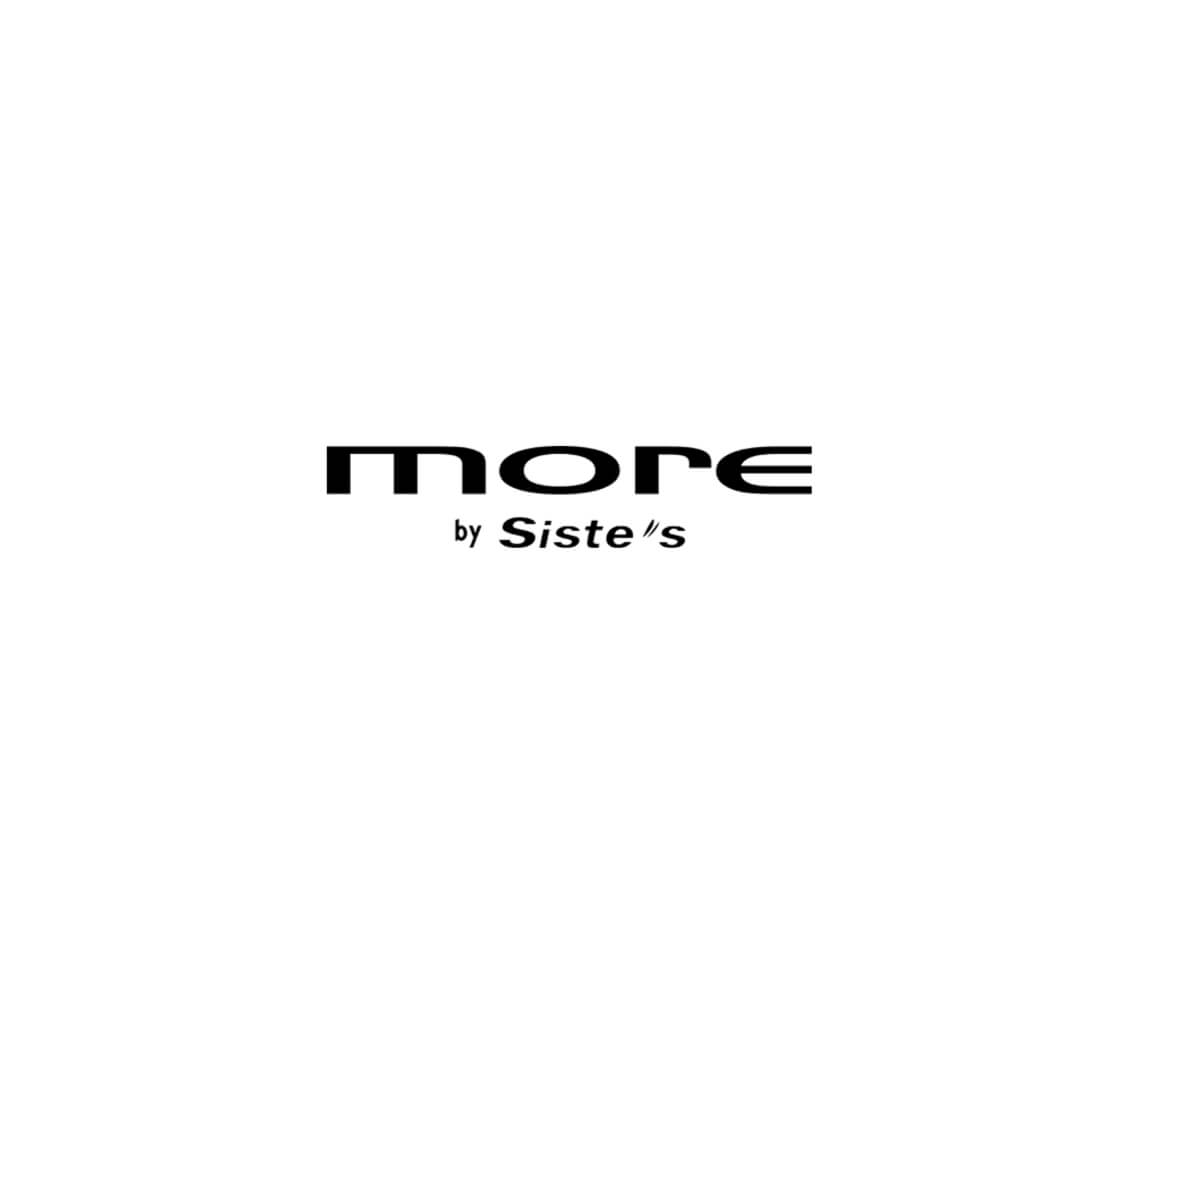 MORE BY SISTE'S